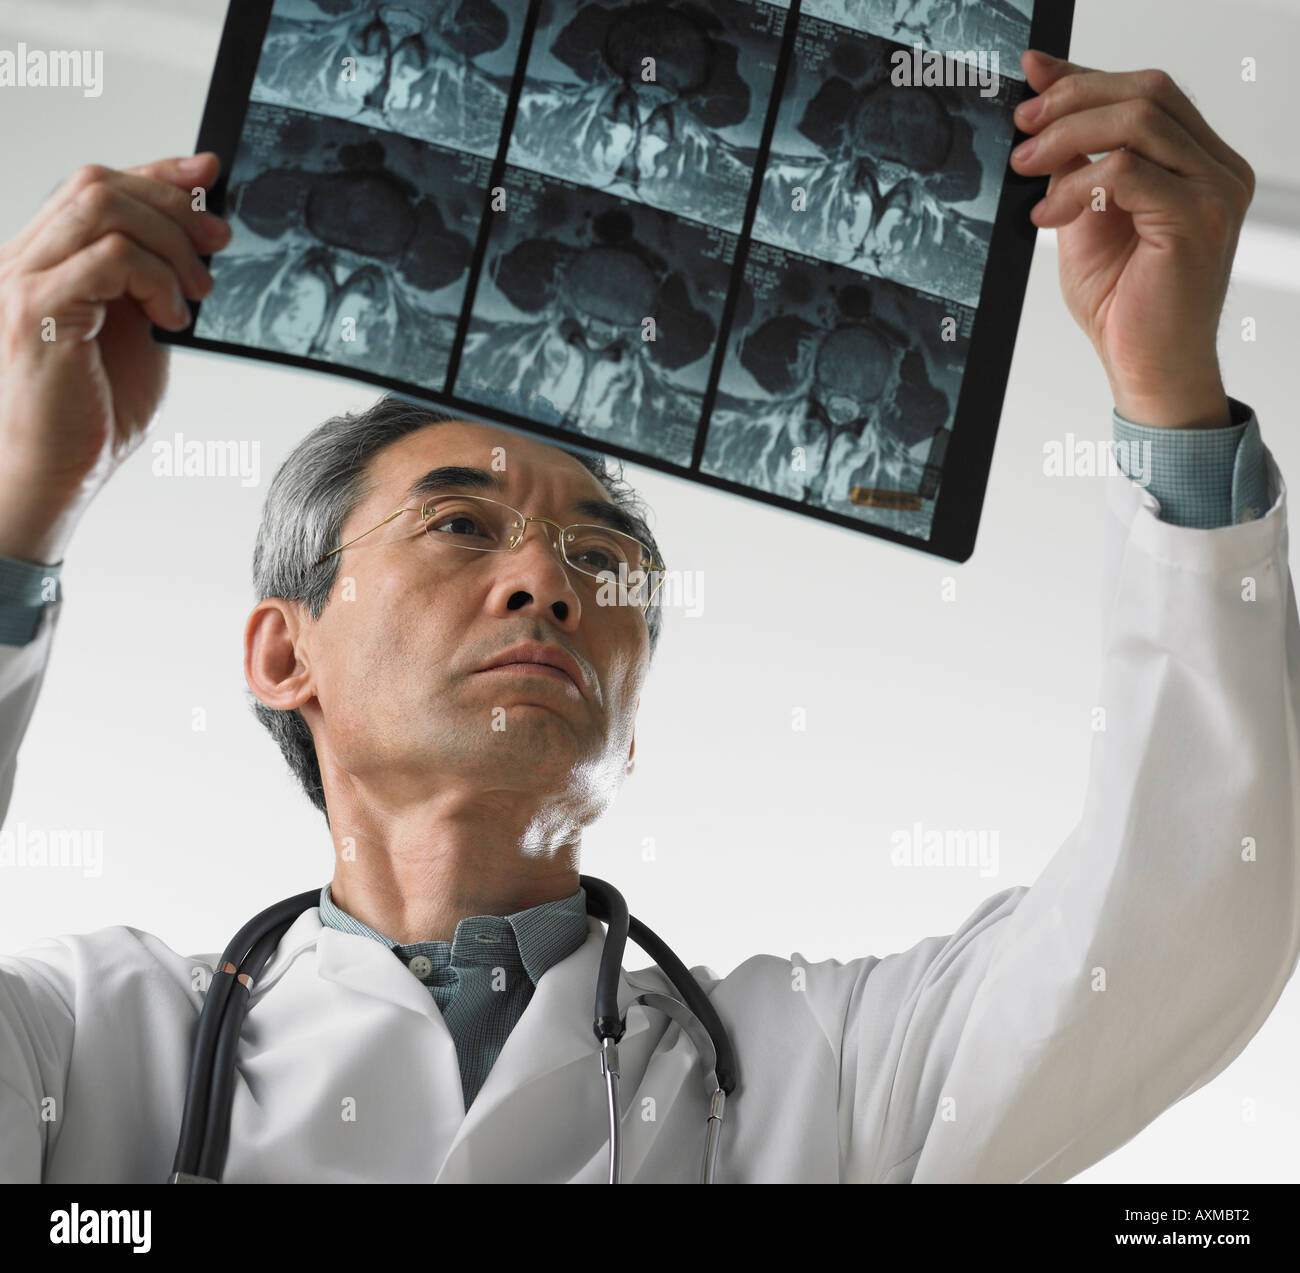 Male doctor looking at x rays - Stock Image